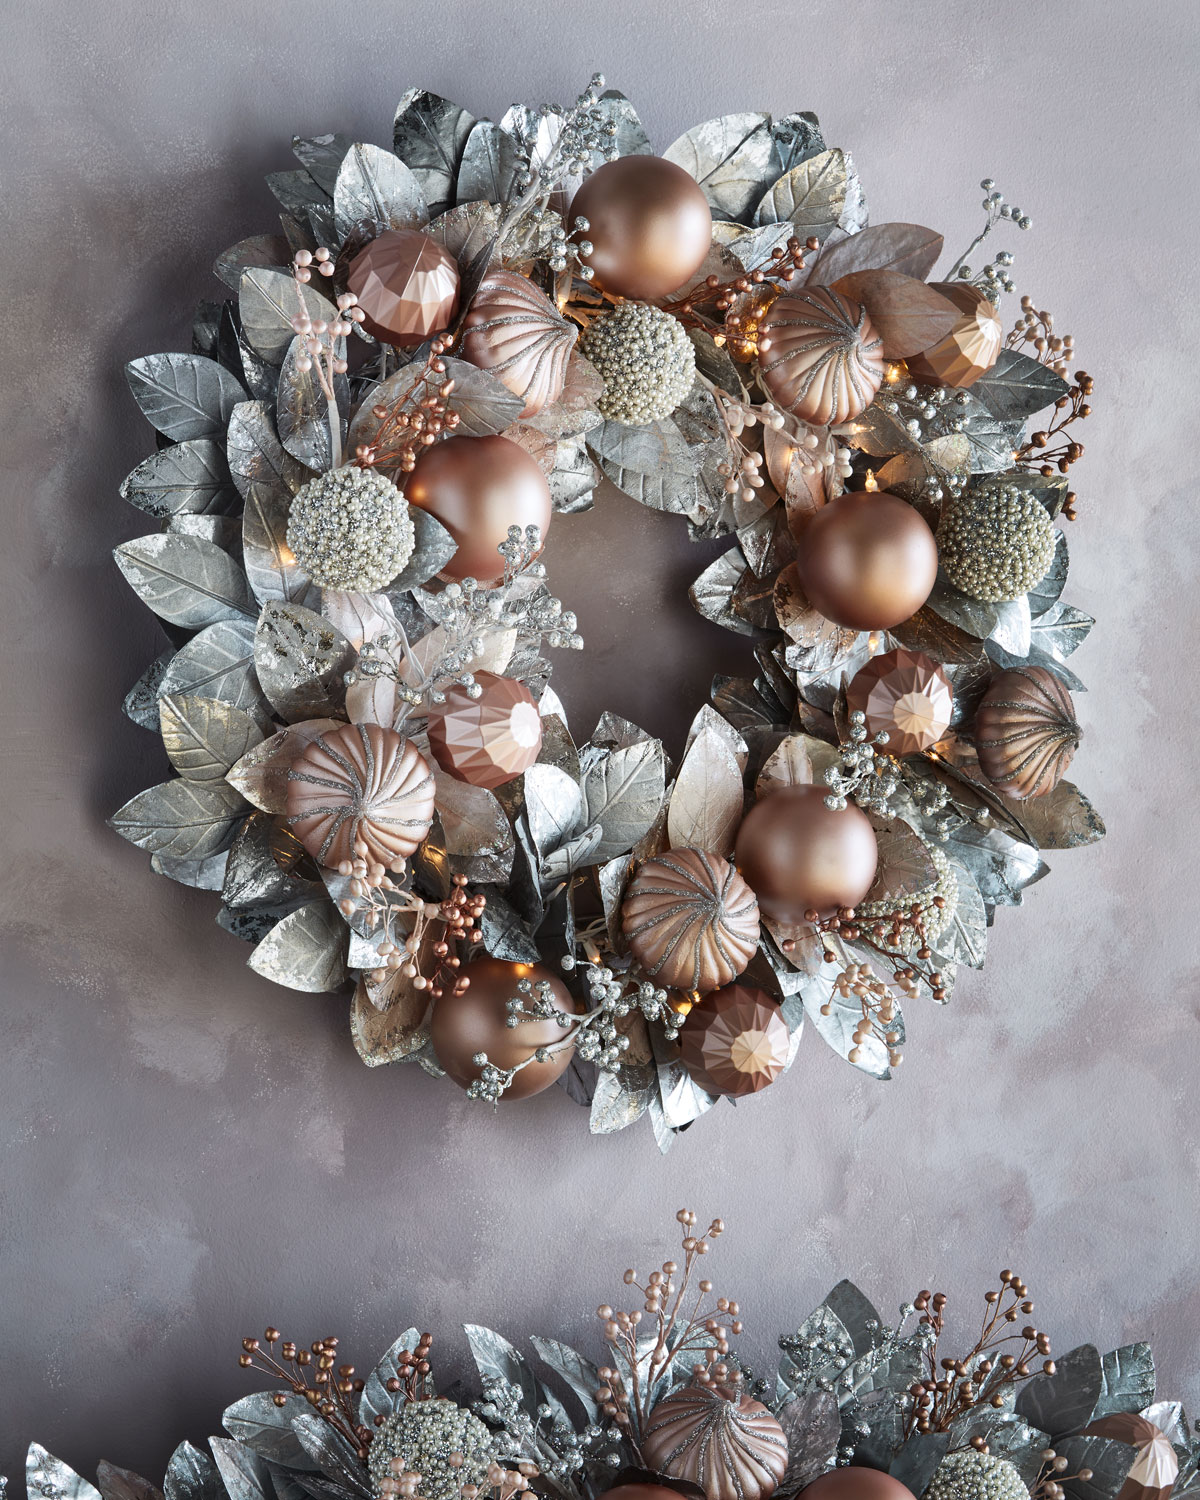 Blush and Pewter Collection Pre-Lit Wreath, $550.00, Neiman Marcus